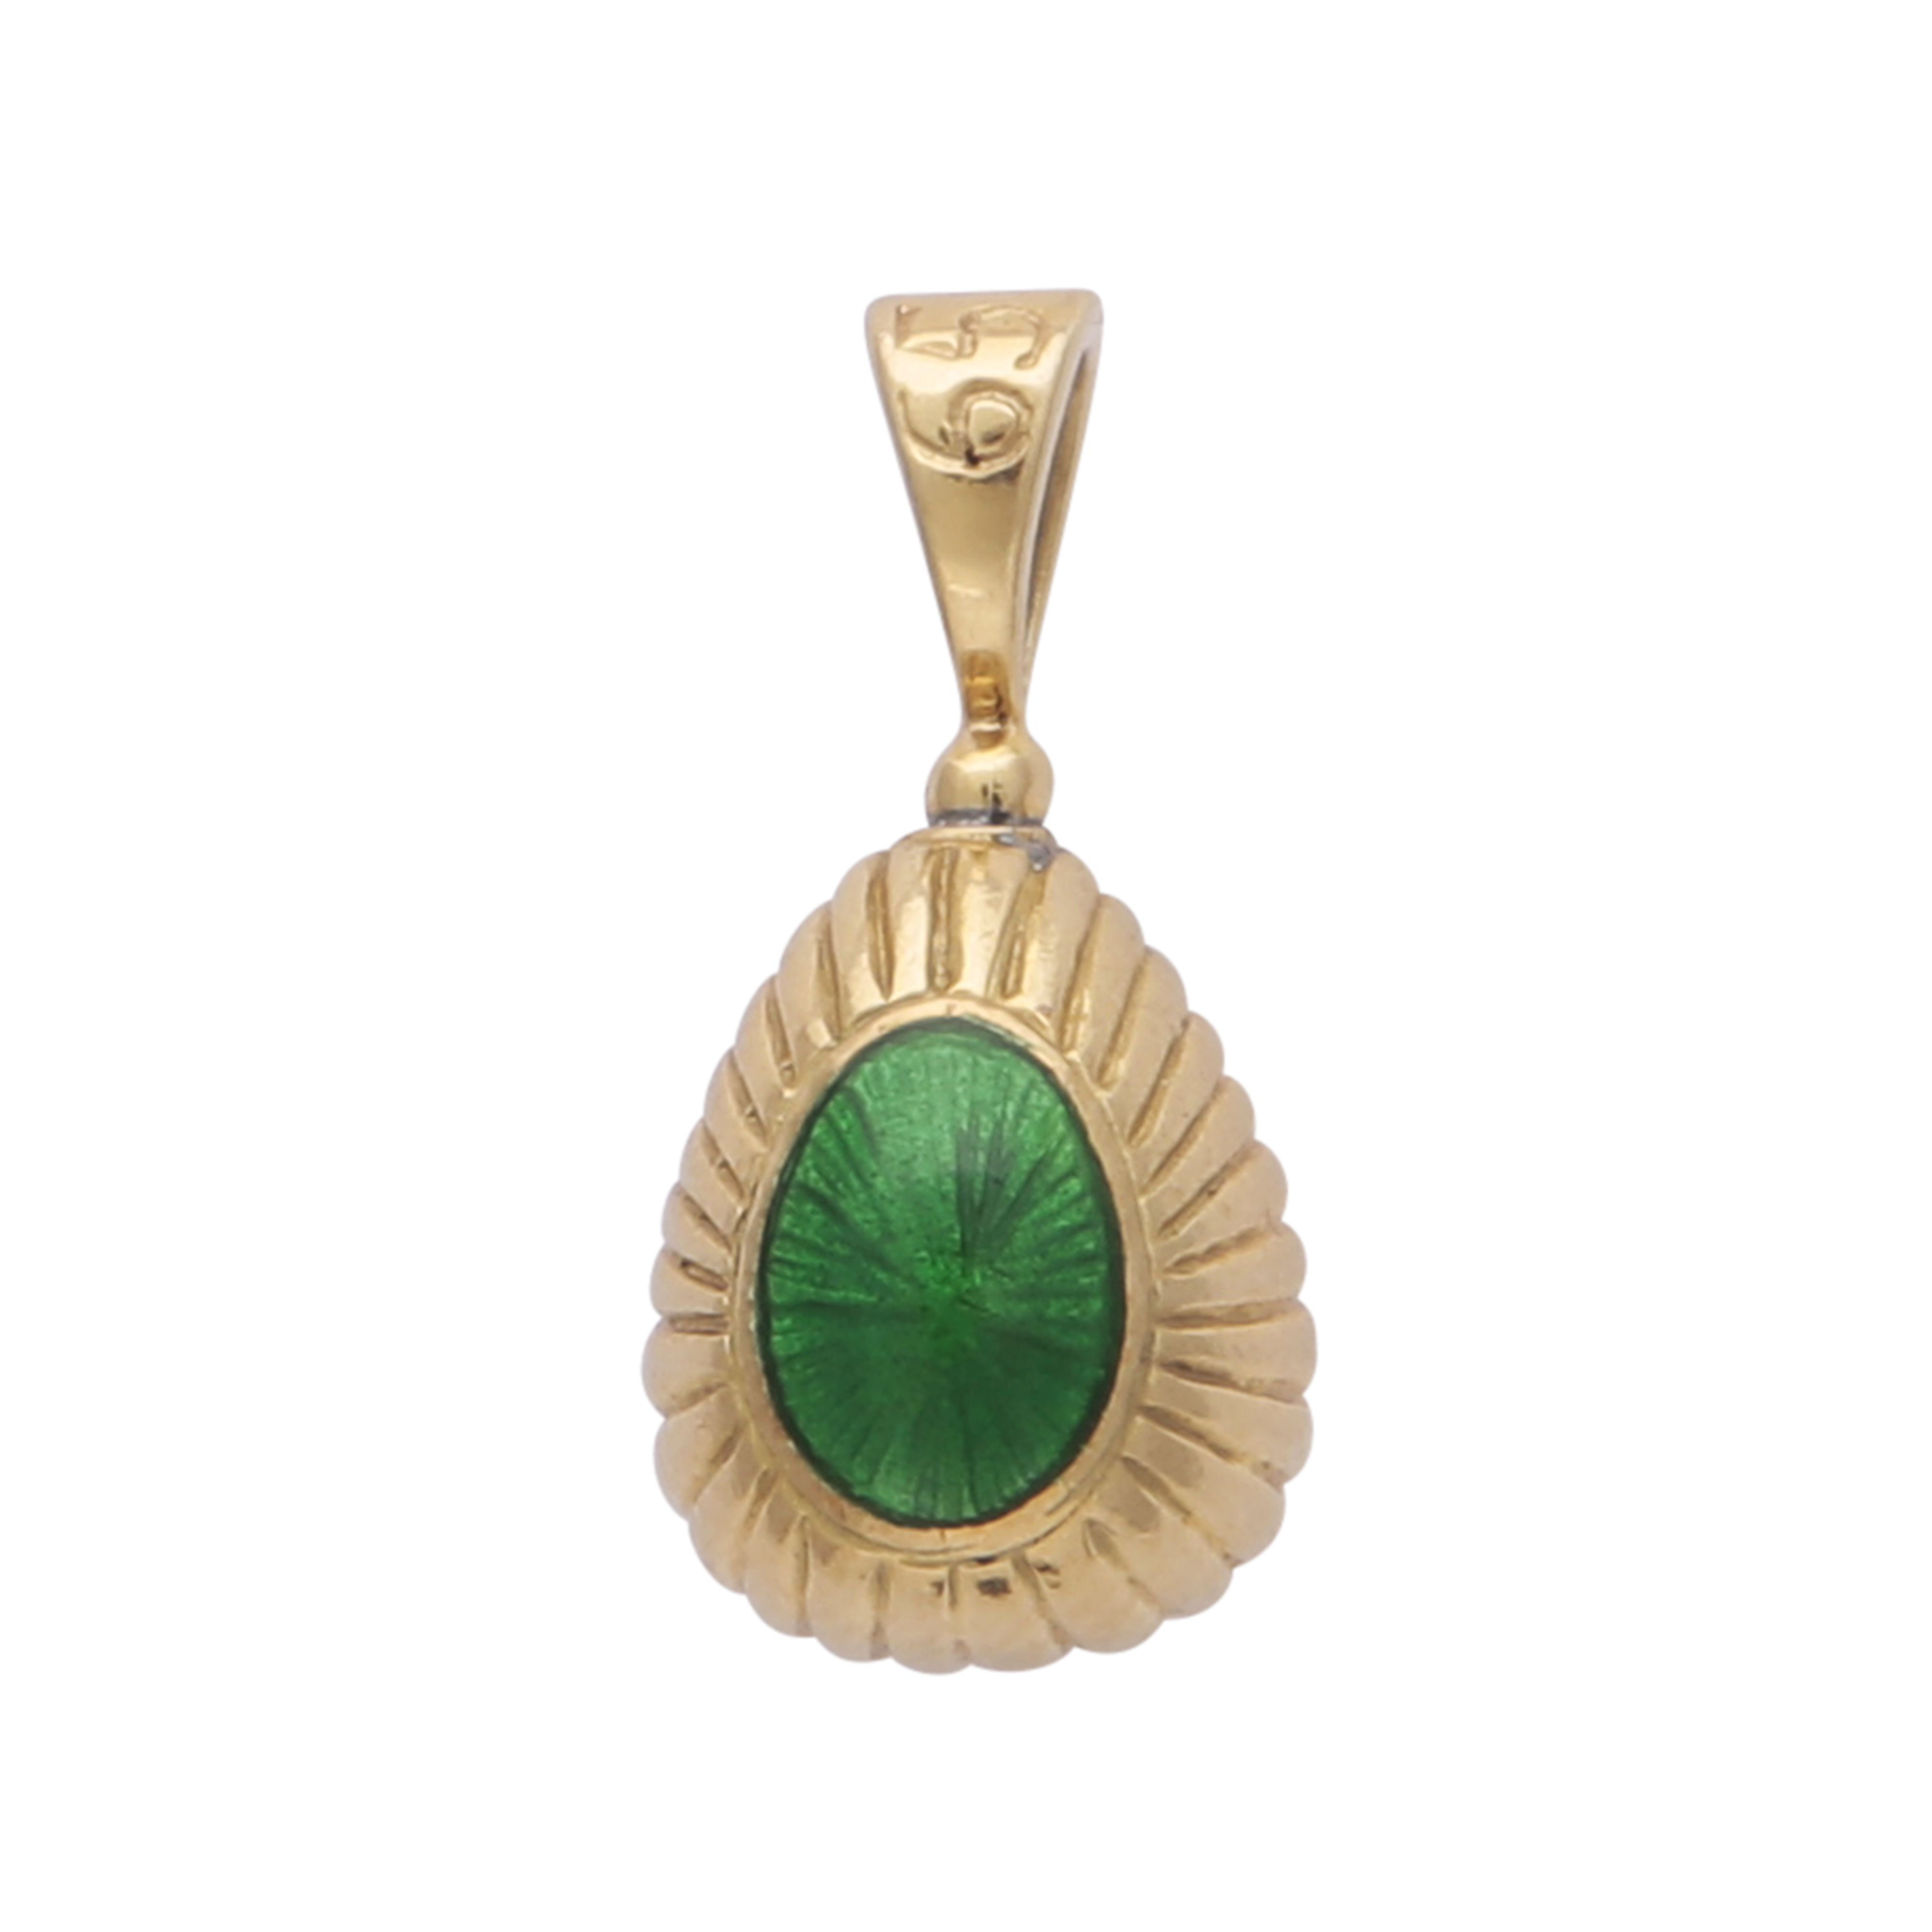 Los 168 - SARAH FABERGE A contemporary enamelled egg pendant in 18ct yellow gold by Sarah Faberge, designed as